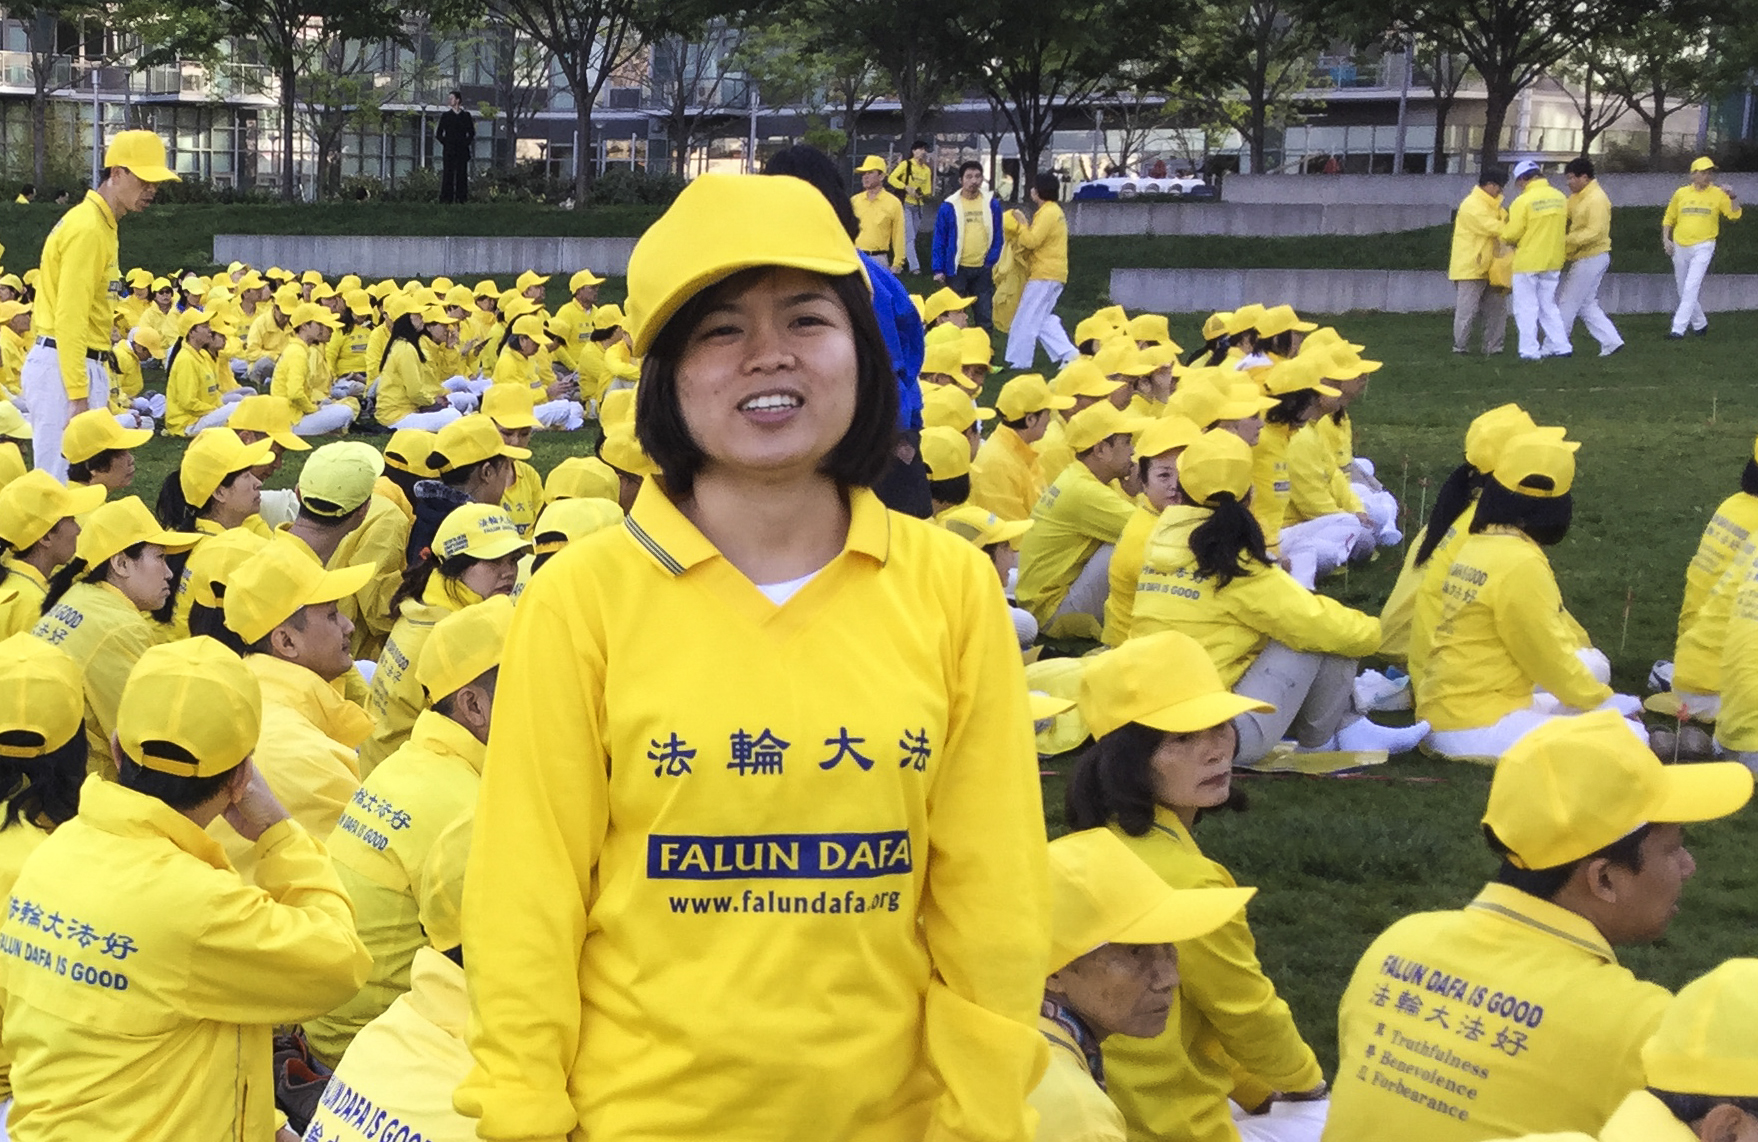 Tran Thi Trang, a Falun Gong practitioner from Vietnam, participates in a character formation event at Gantry Plaza State Park on May 12, 2016. (Frank Fang/Epoch Times)